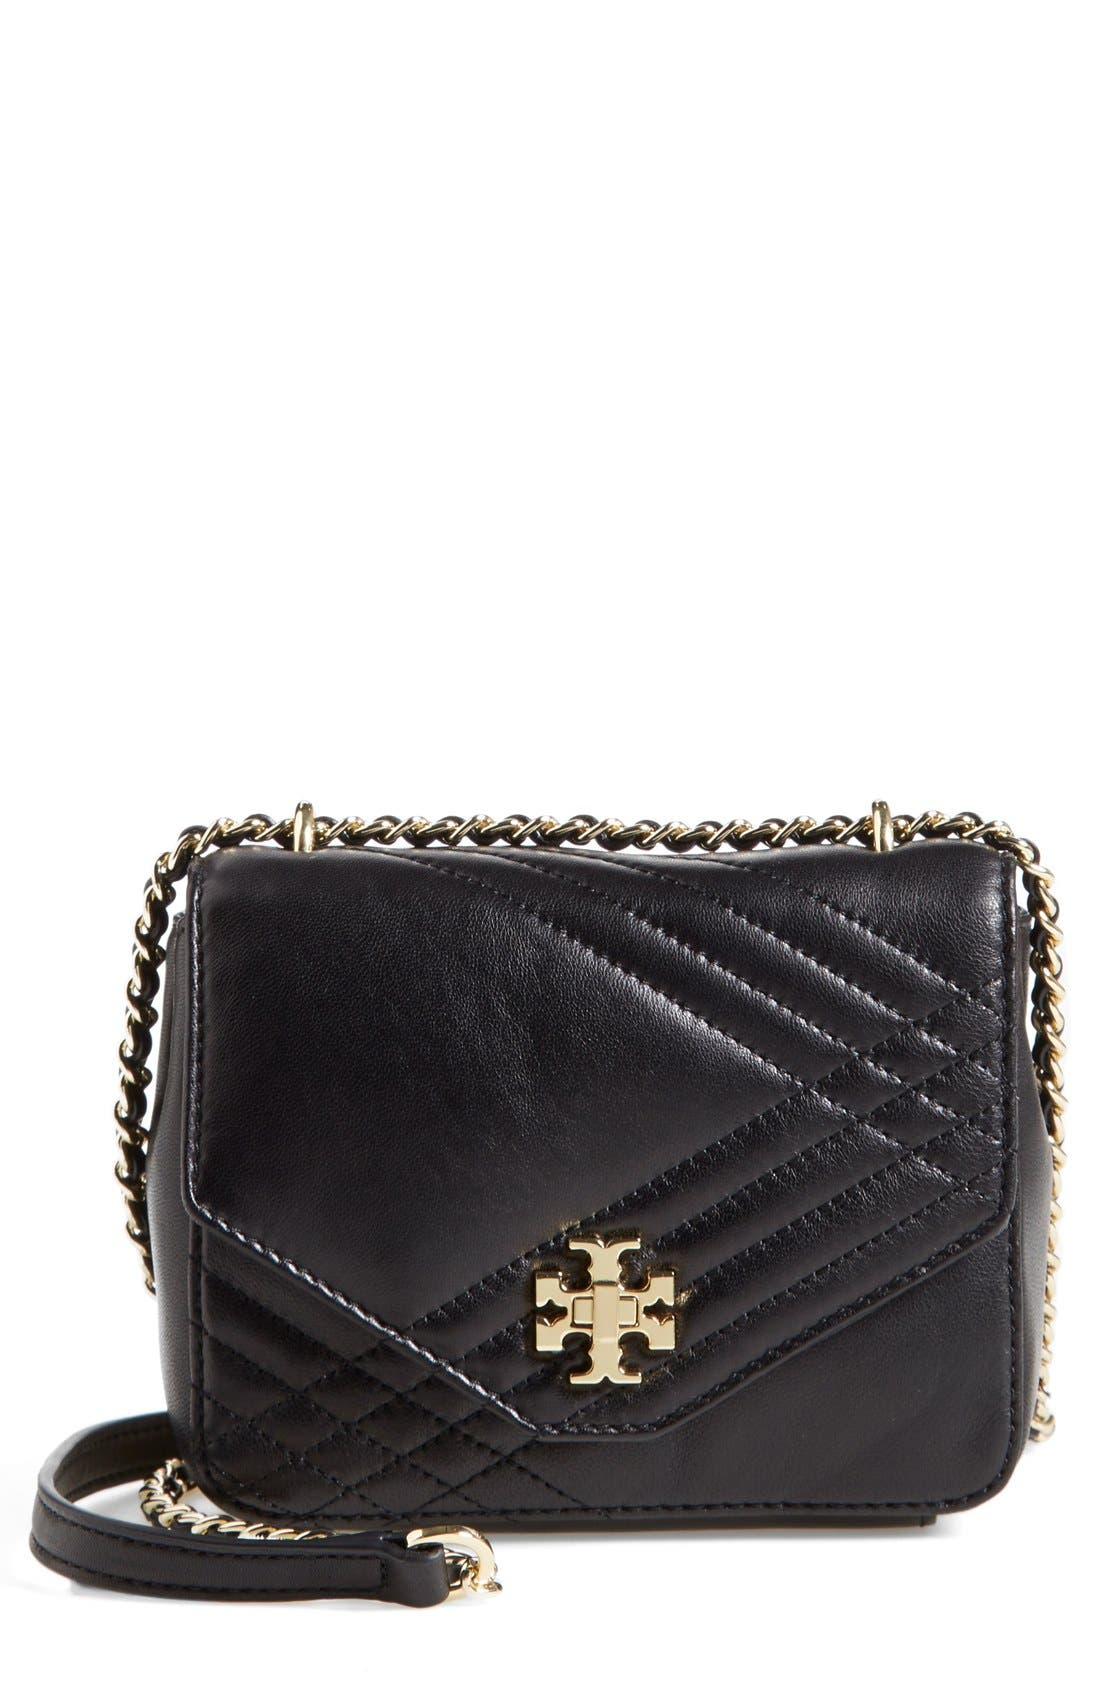 Alternate Image 1 Selected - Tory Burch 'Mini Kira' Quilted Crossbody Bag